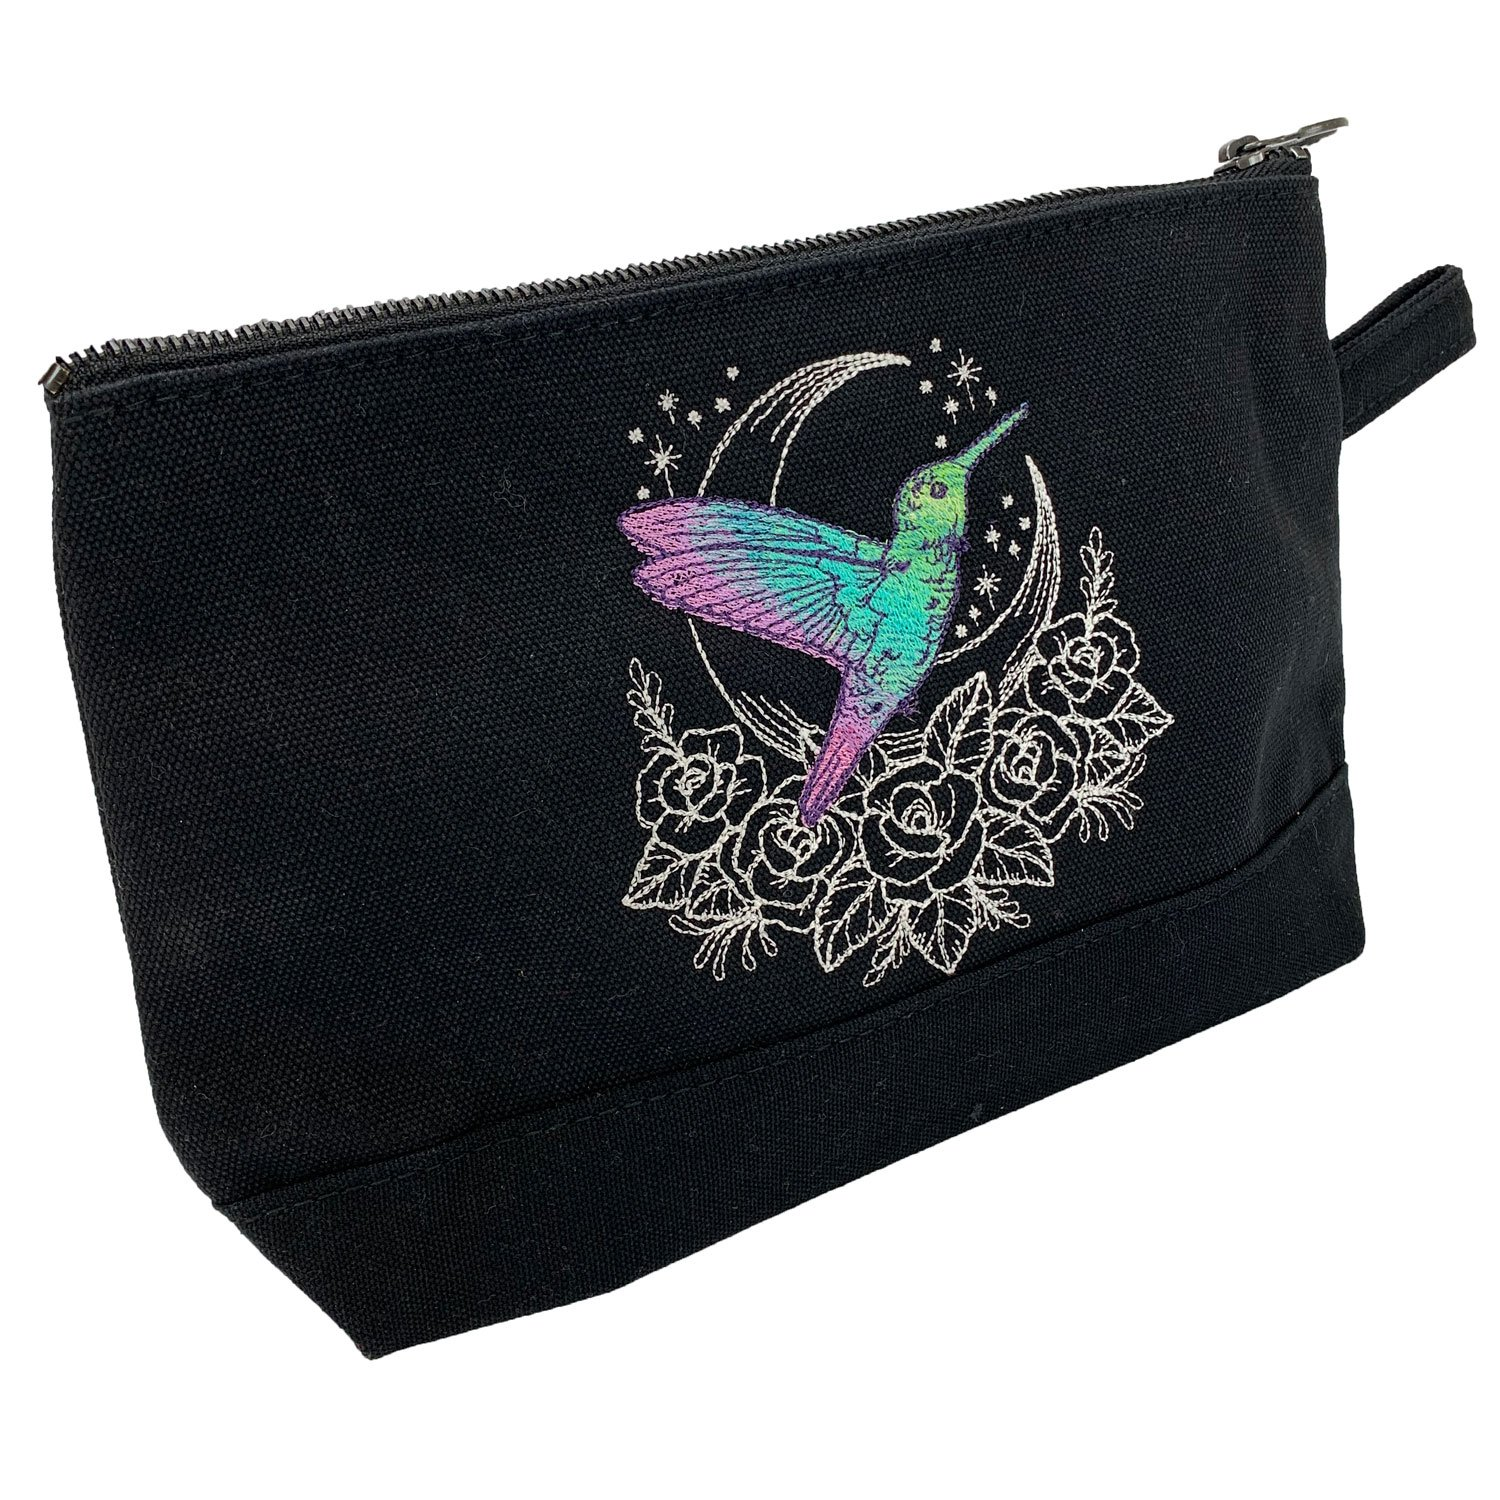 Embroidered Zip Pouch Black Hummingbird